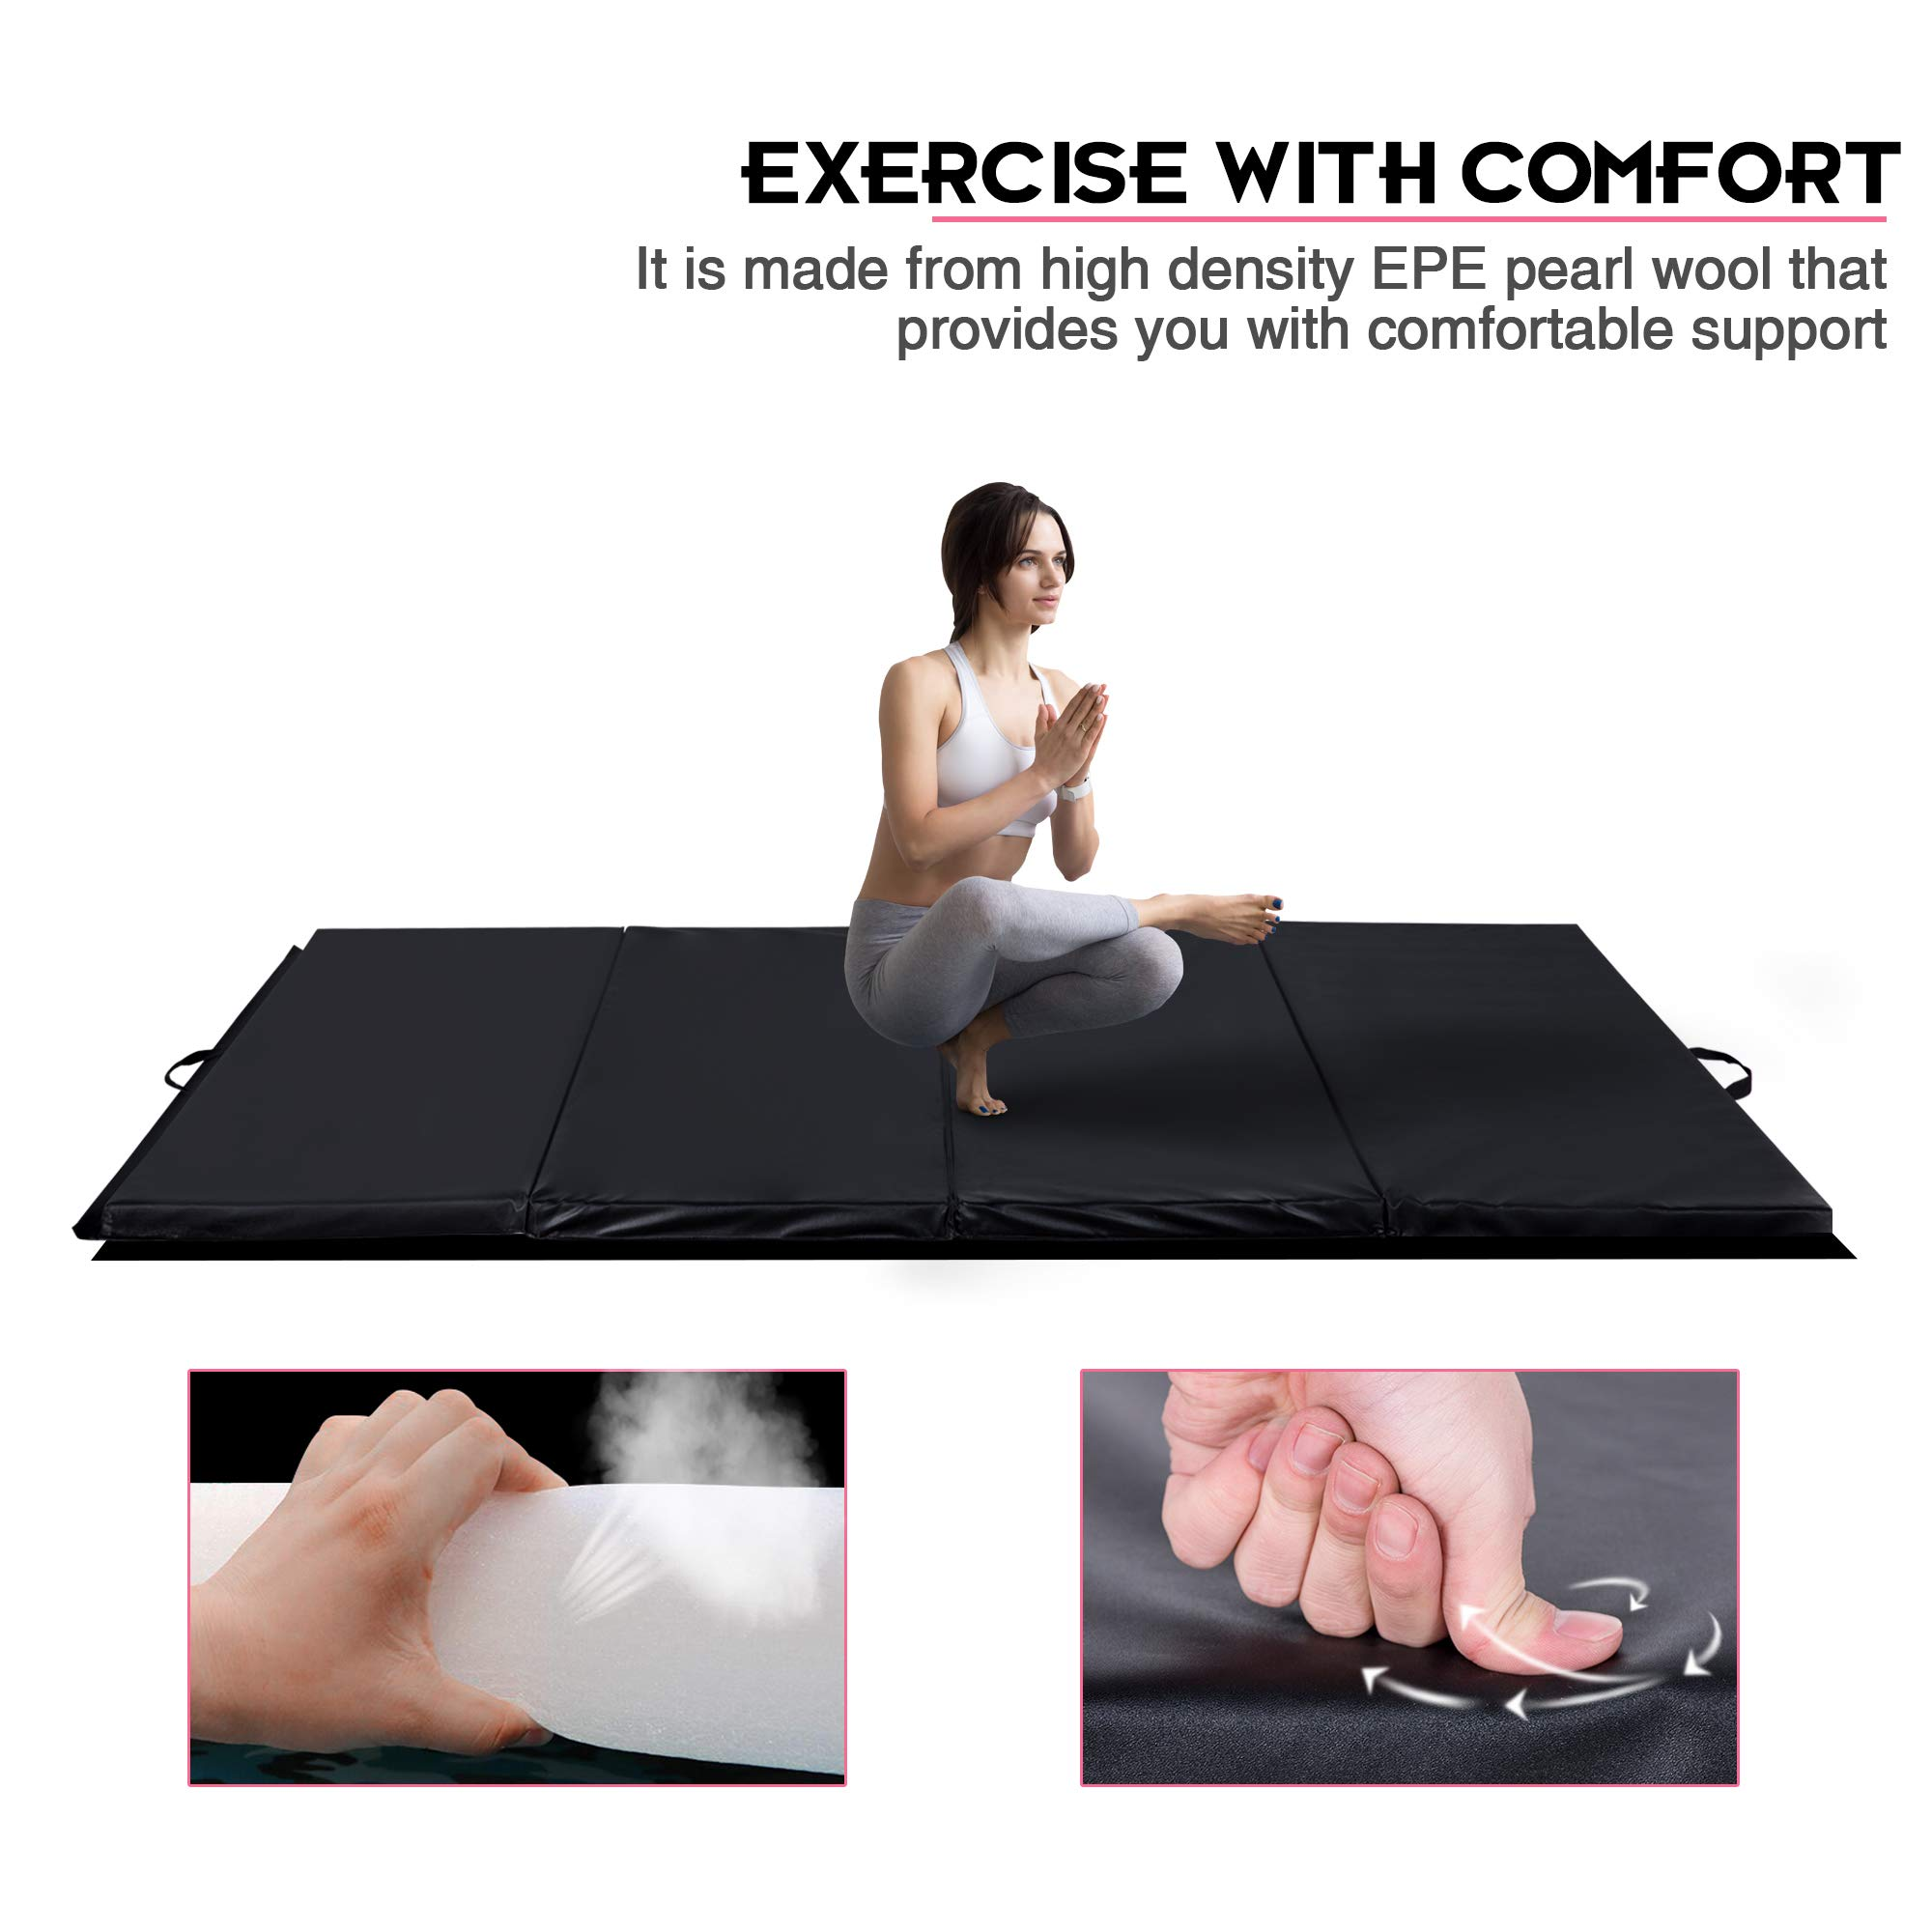 Homevibes 4' x 10' x 2'' Gymnastics Mat Thick Folding Panel Tumbling Mat Gym Exercise Aerobics Mat with Handle Compatibility with Stretching Yoga Cheerlanding Martial Arts, Black by Homevibes (Image #3)